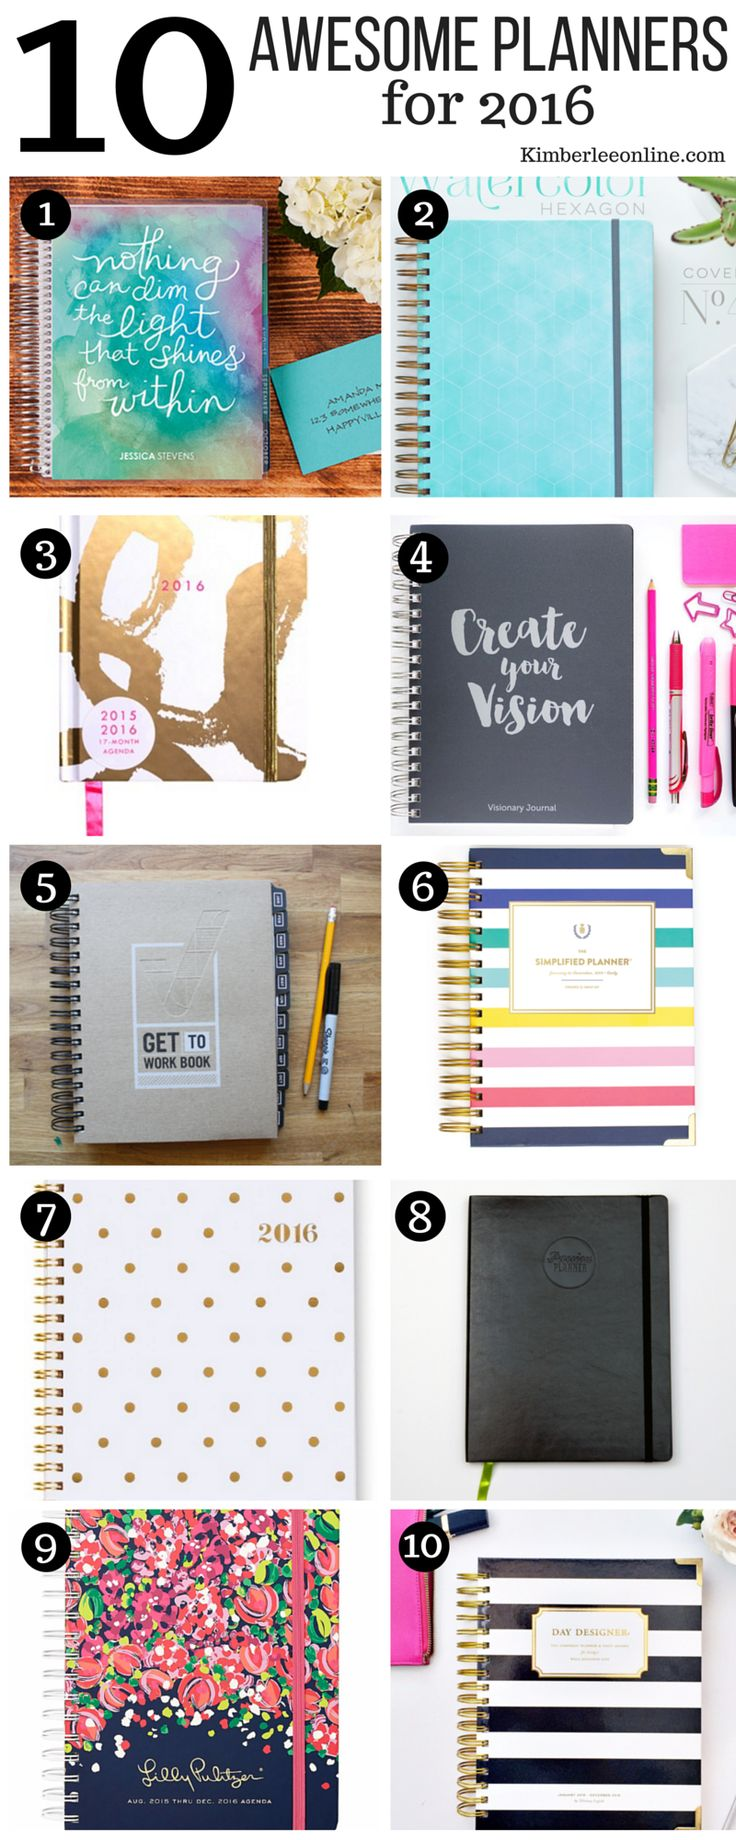 The 10 best planners for women for 2016. Just ordered the #GetToWorkBook 2016